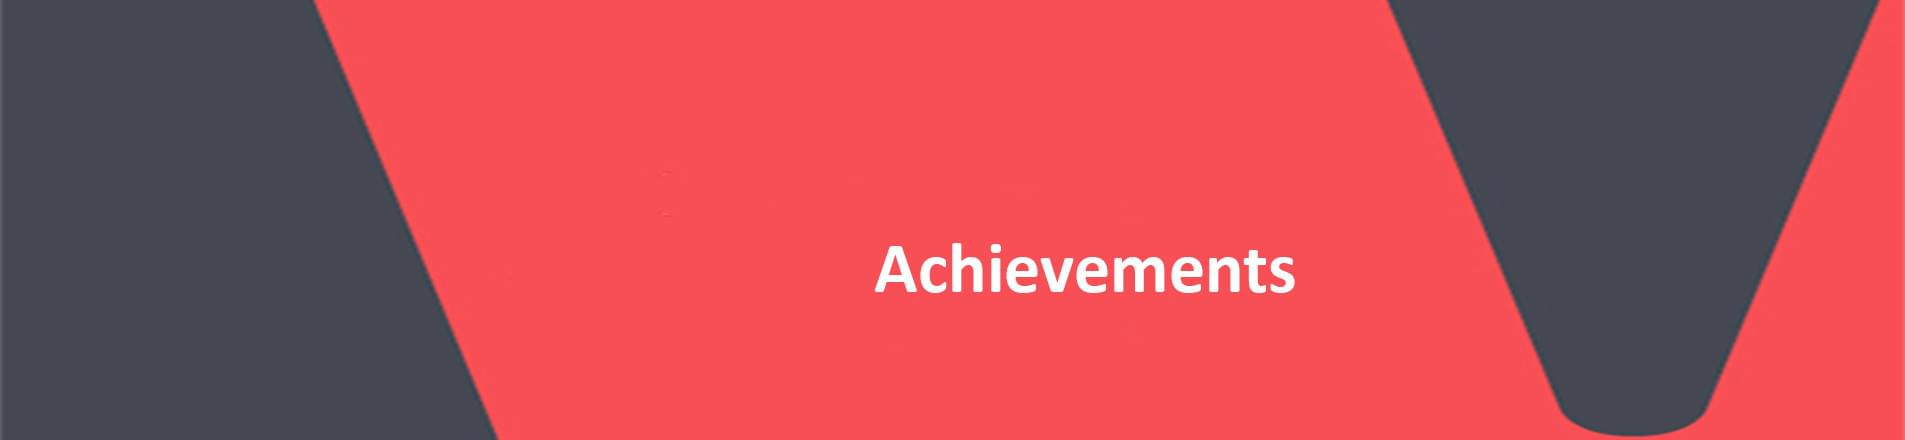 Achievements.